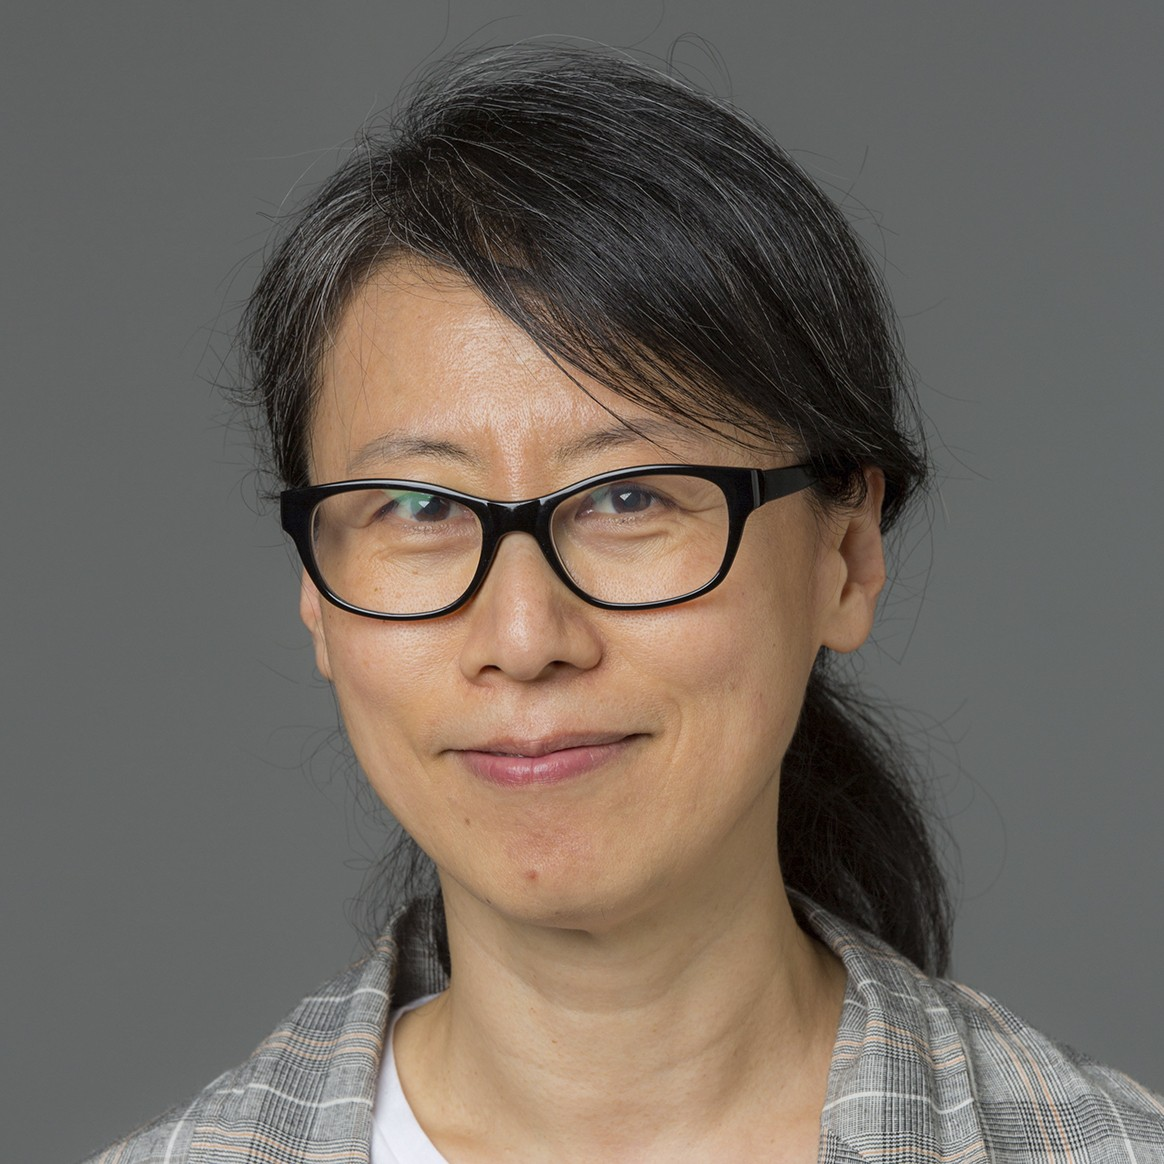 Head shot of Penn State Assistant Professor of Art Education and Women's, Gender, and Sexuality Studies Michelle Bae-Dimitriadis